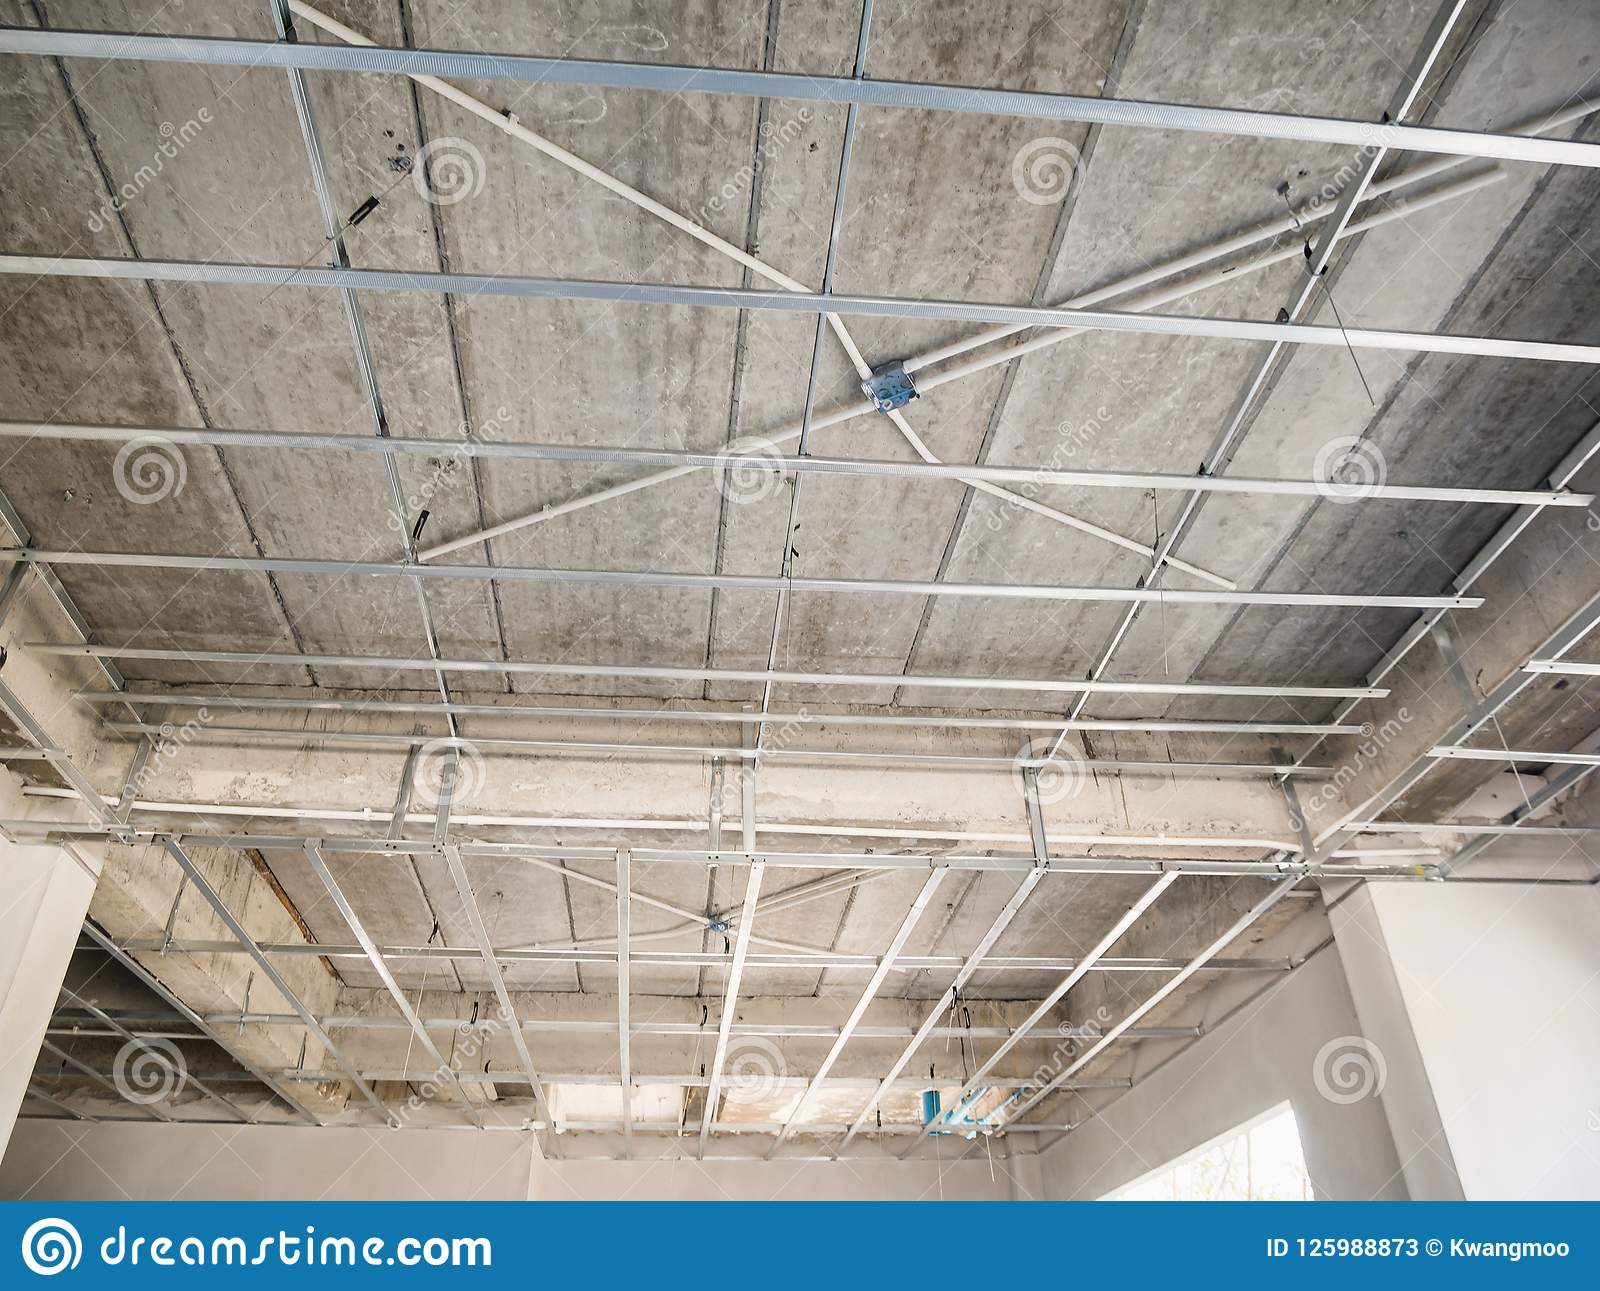 Install Metal Frame For Plaster Board Ceiling At House Stock